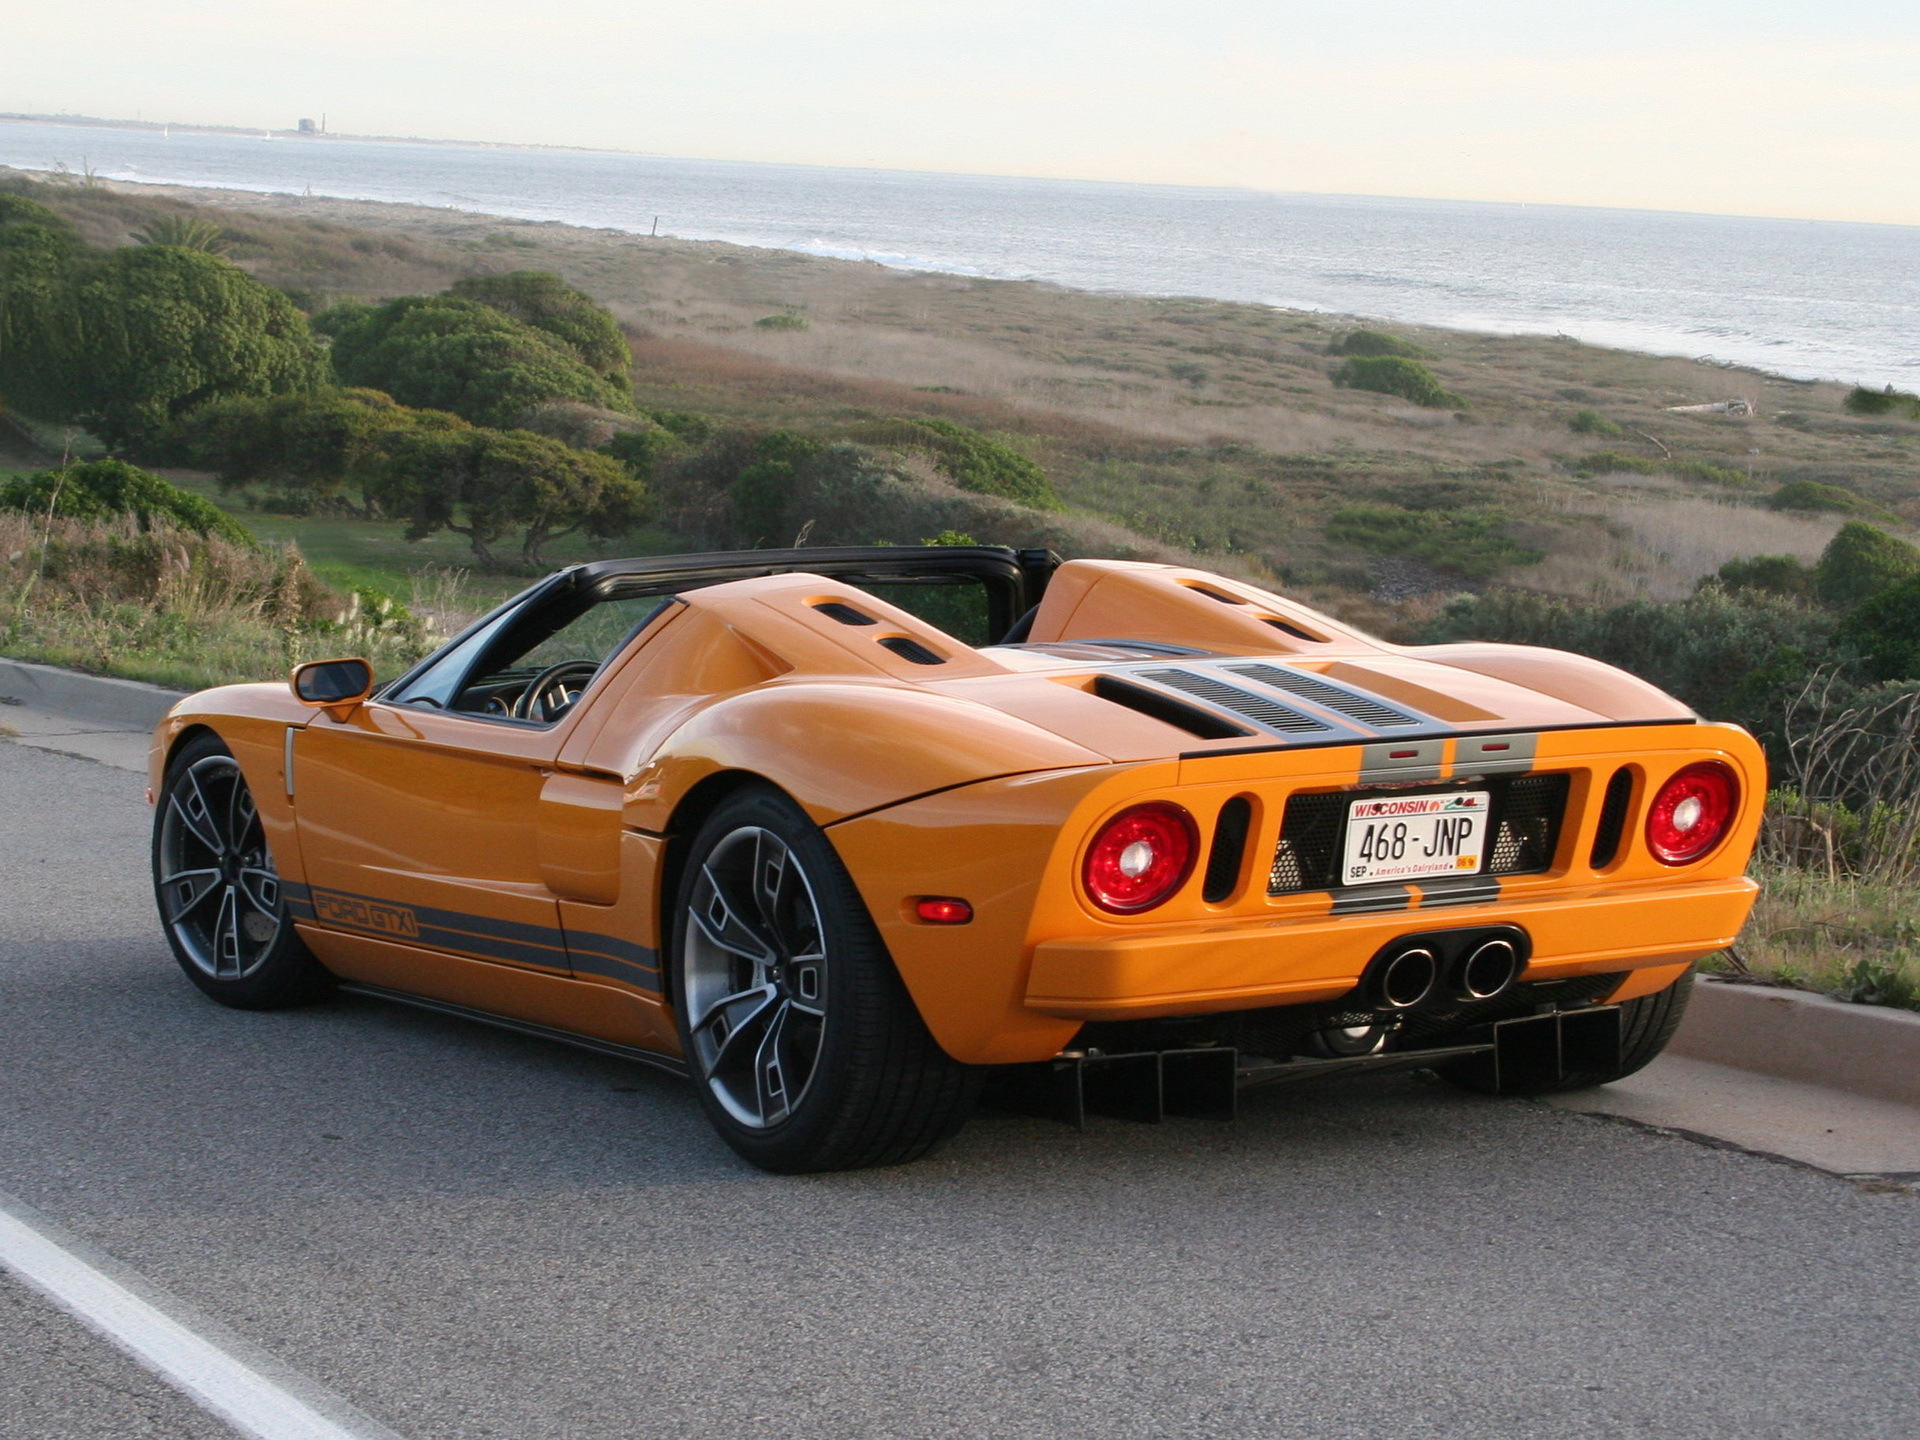 Ford Gt Forum New Car Specs And Price 2019 2020 Focus Rear Brake Diagram Hd Walls Find Wallpapers Images Wallpaper Background